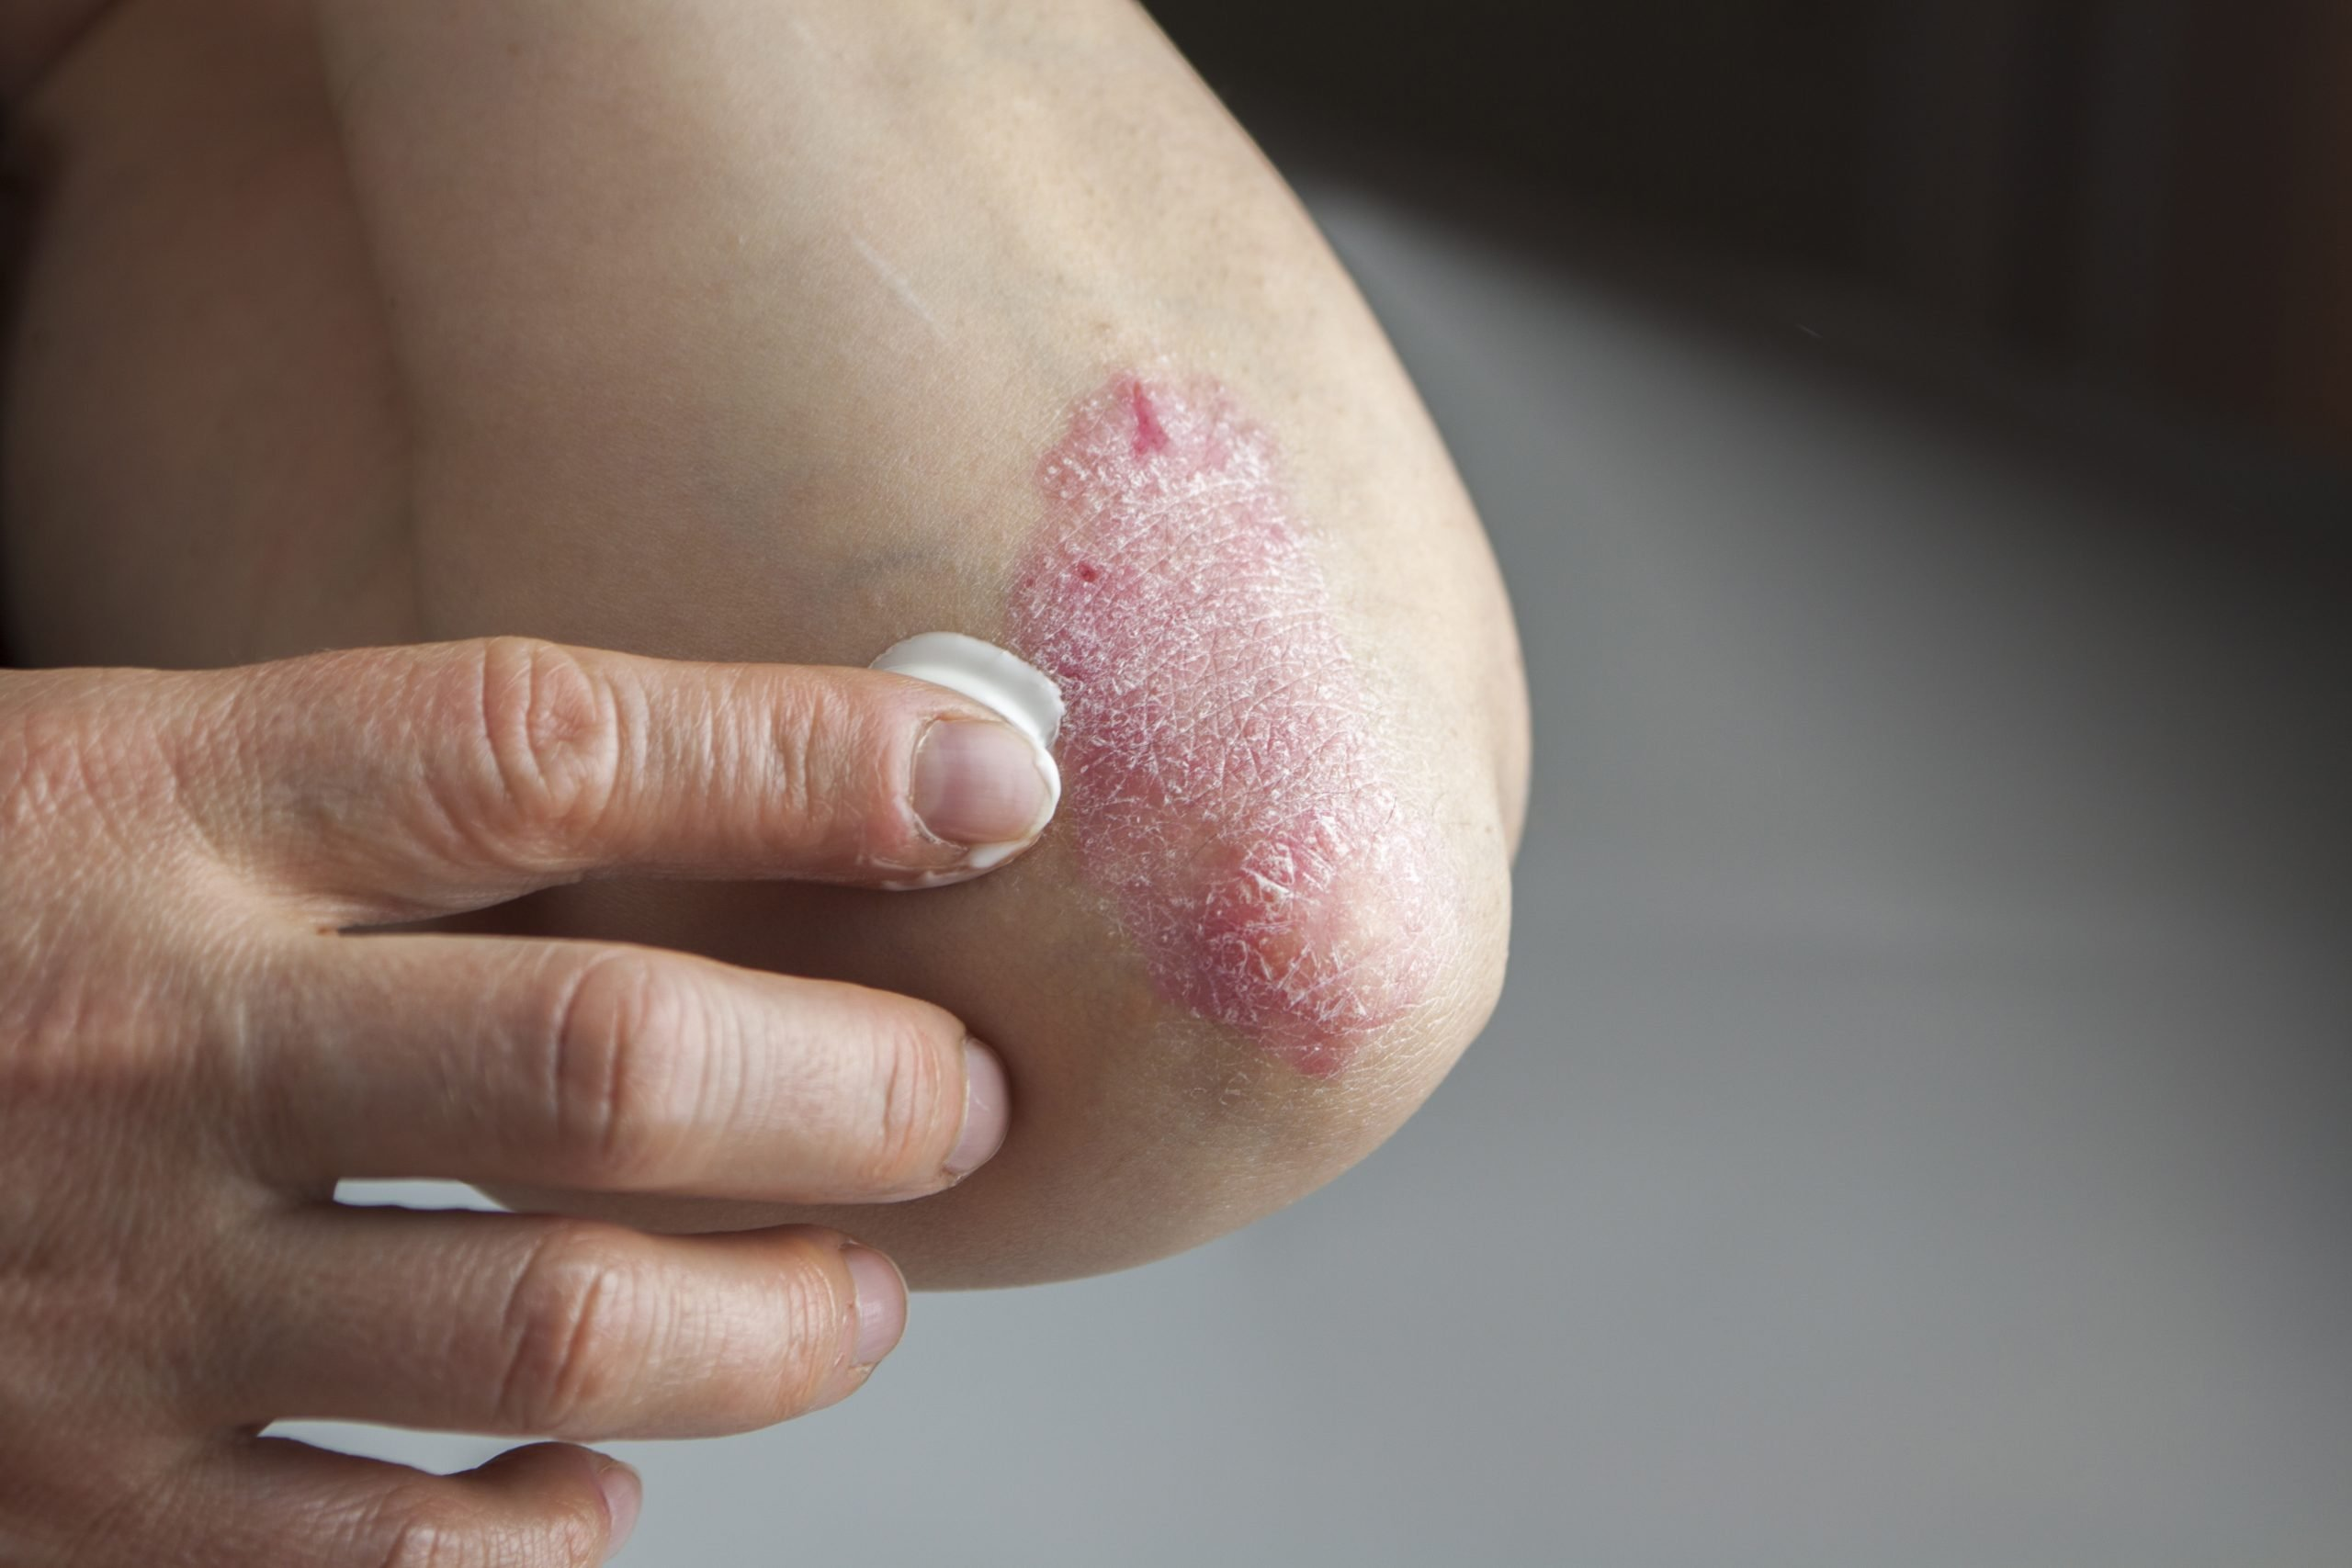 Psoriasis – Topical treatment and management of psoriasis